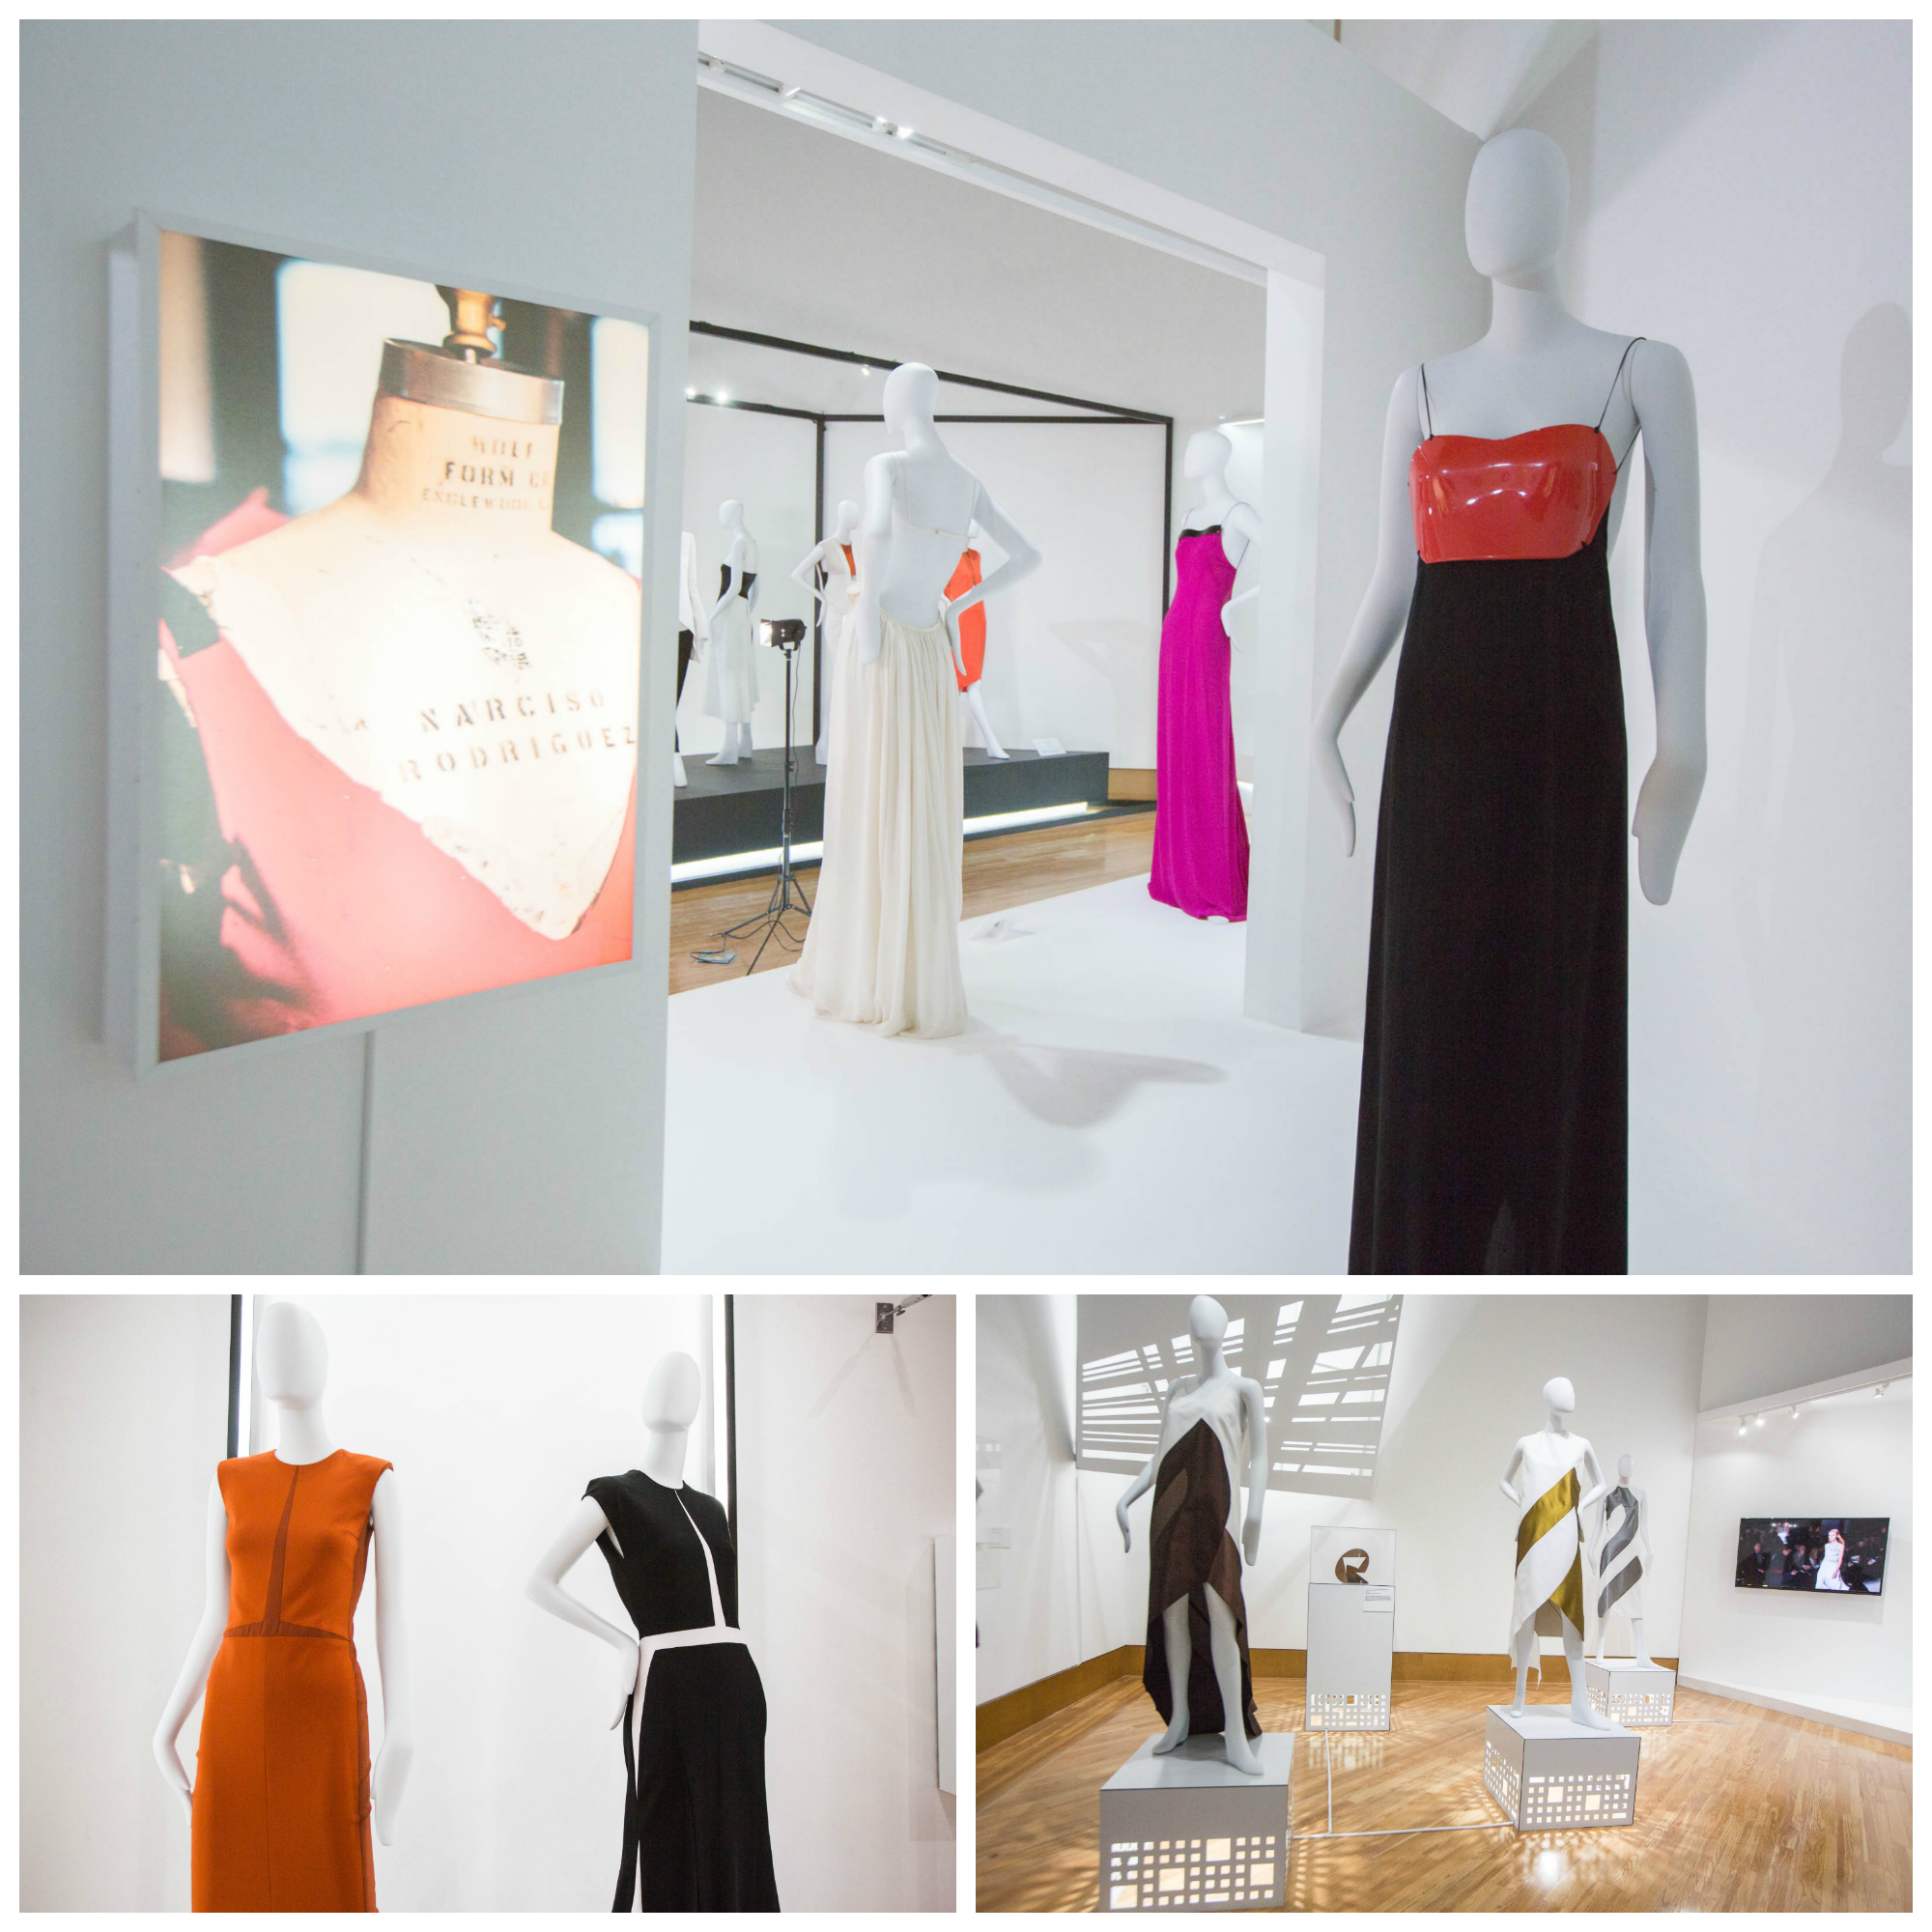 collage-narcisso-rodriguez-exhibit-2